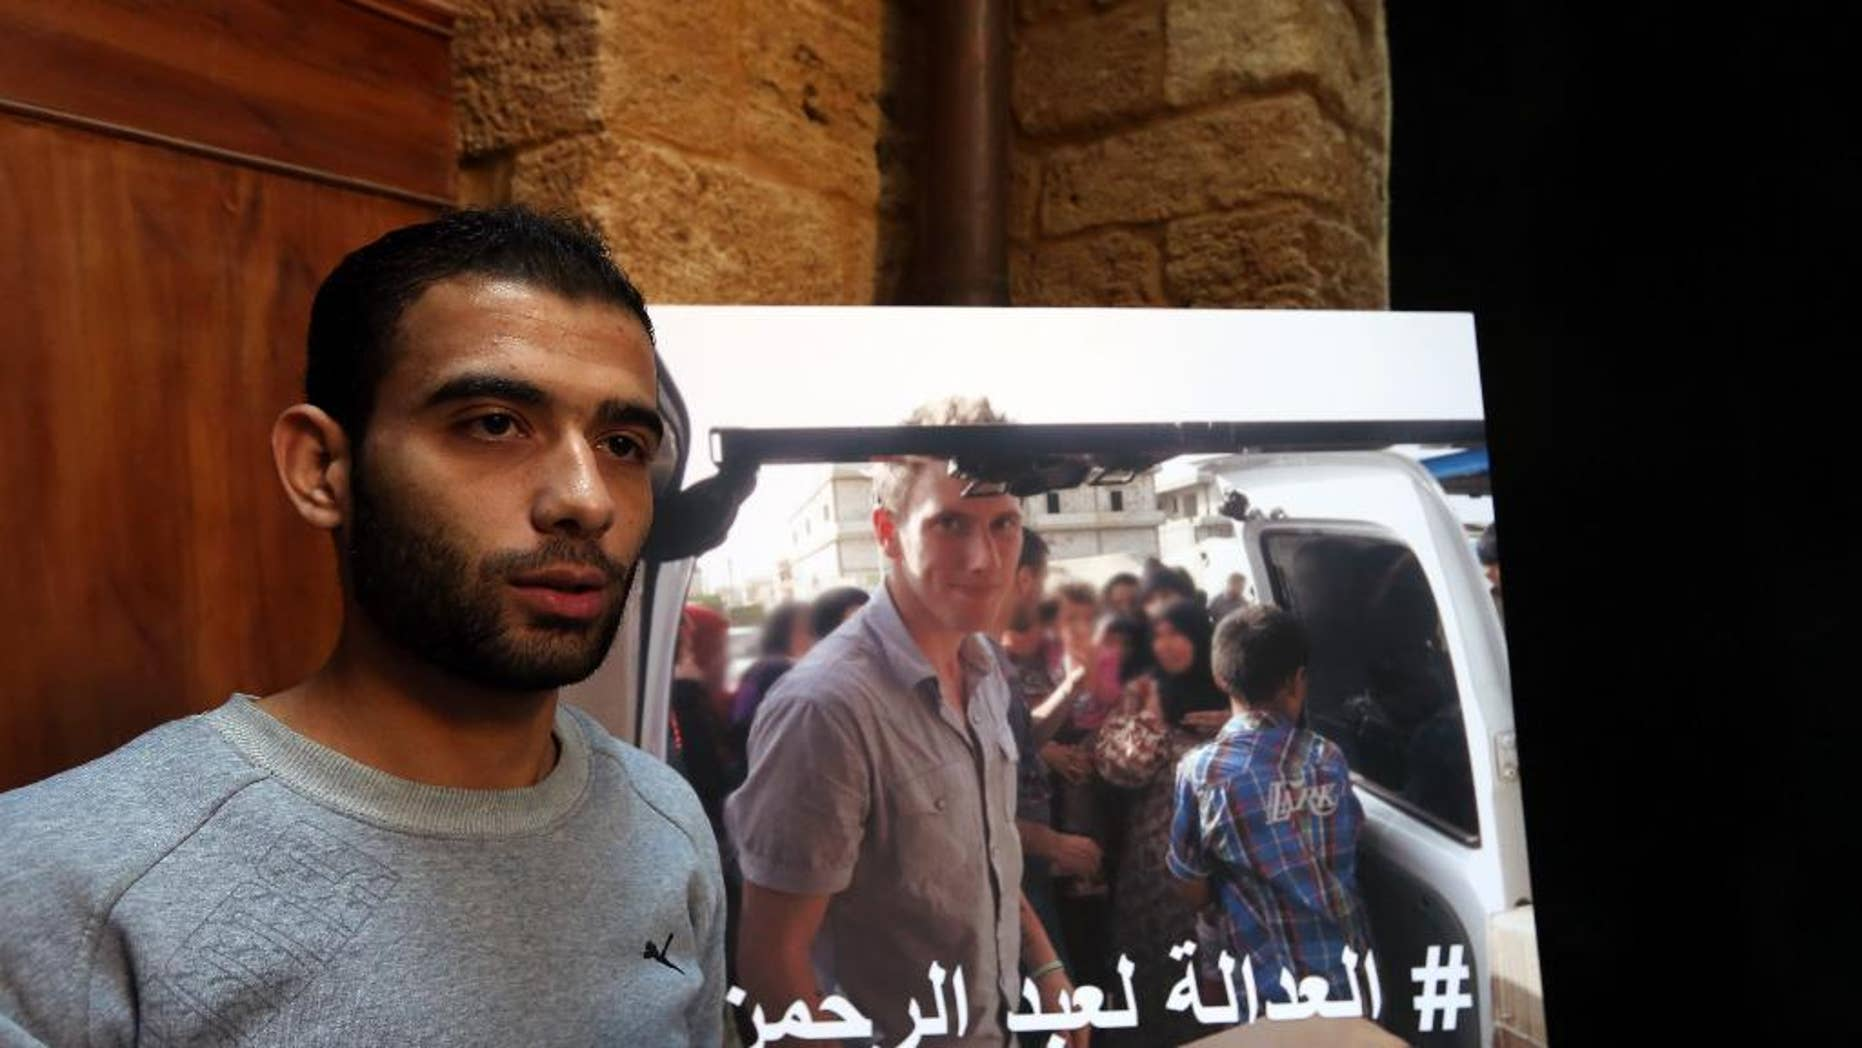 """Syrian refugee Amjad Moghrabi stands in front of a photograph of his colleague, American aid worker Peter Kassig, 26, who converted to Islam while in captivity and changed his name to Abdul-Rahman Kassig, during an interview with The Associated Press in the northern port city of Tripoli, Lebanon, Saturday, Nov. 8, 2014. Kassig was helping victims of the Syrian civil war when he was captured in Syria last year and threatened with beheading by the Islamic State group. Arabic  reads, """"Justice for Abdul-Rahman."""" (AP Photo/Bilal Hussein)"""